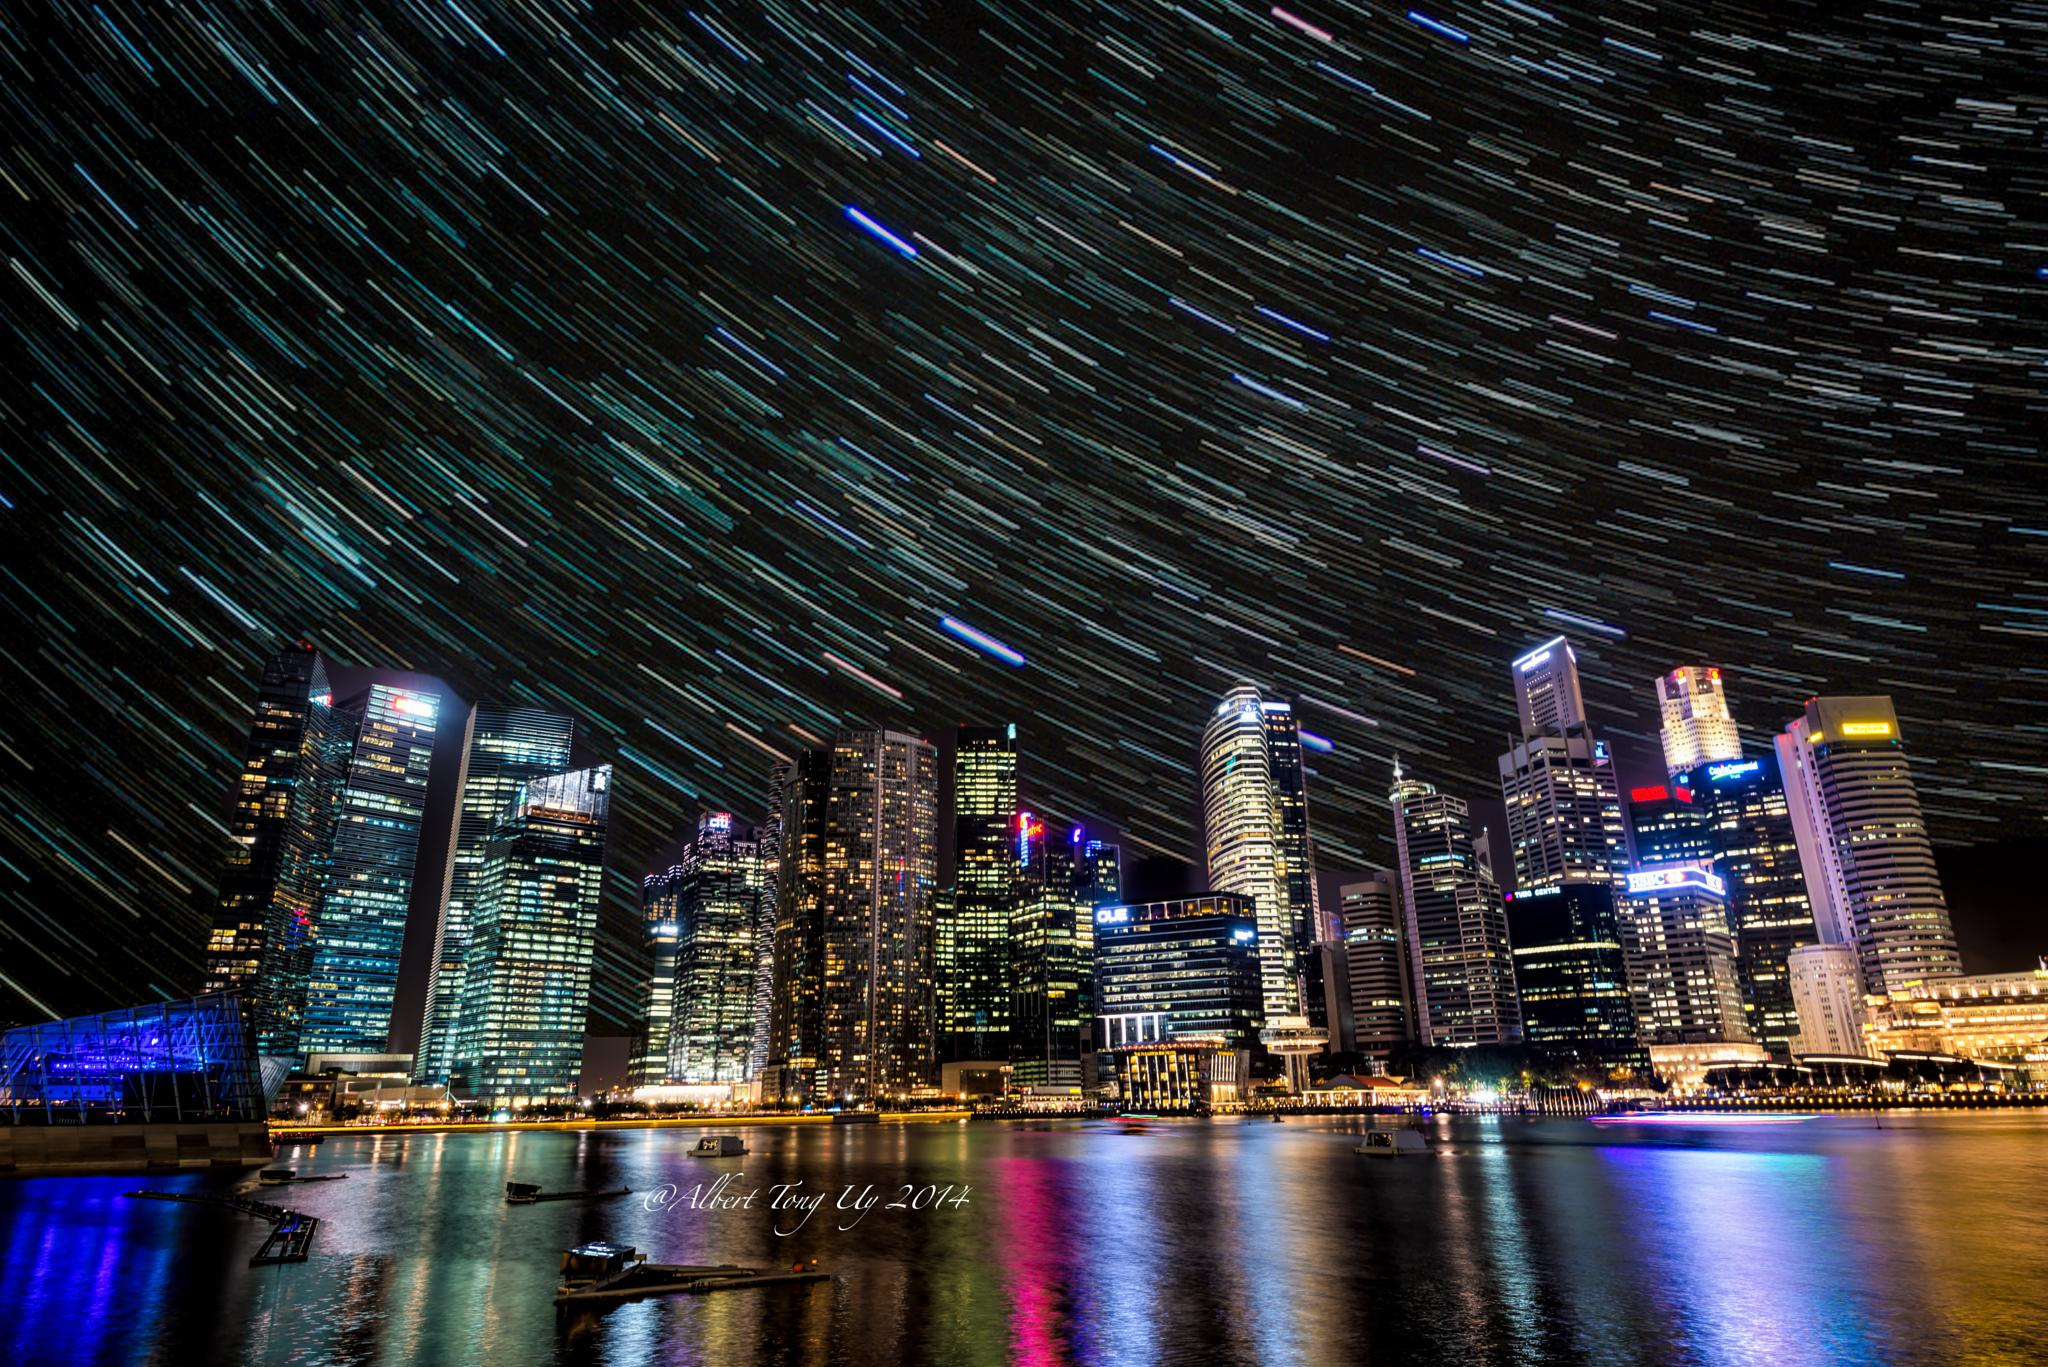 Singapore, Marina Bay Sands, Laser Show, HDR Panorama photo 37 by iatu8888